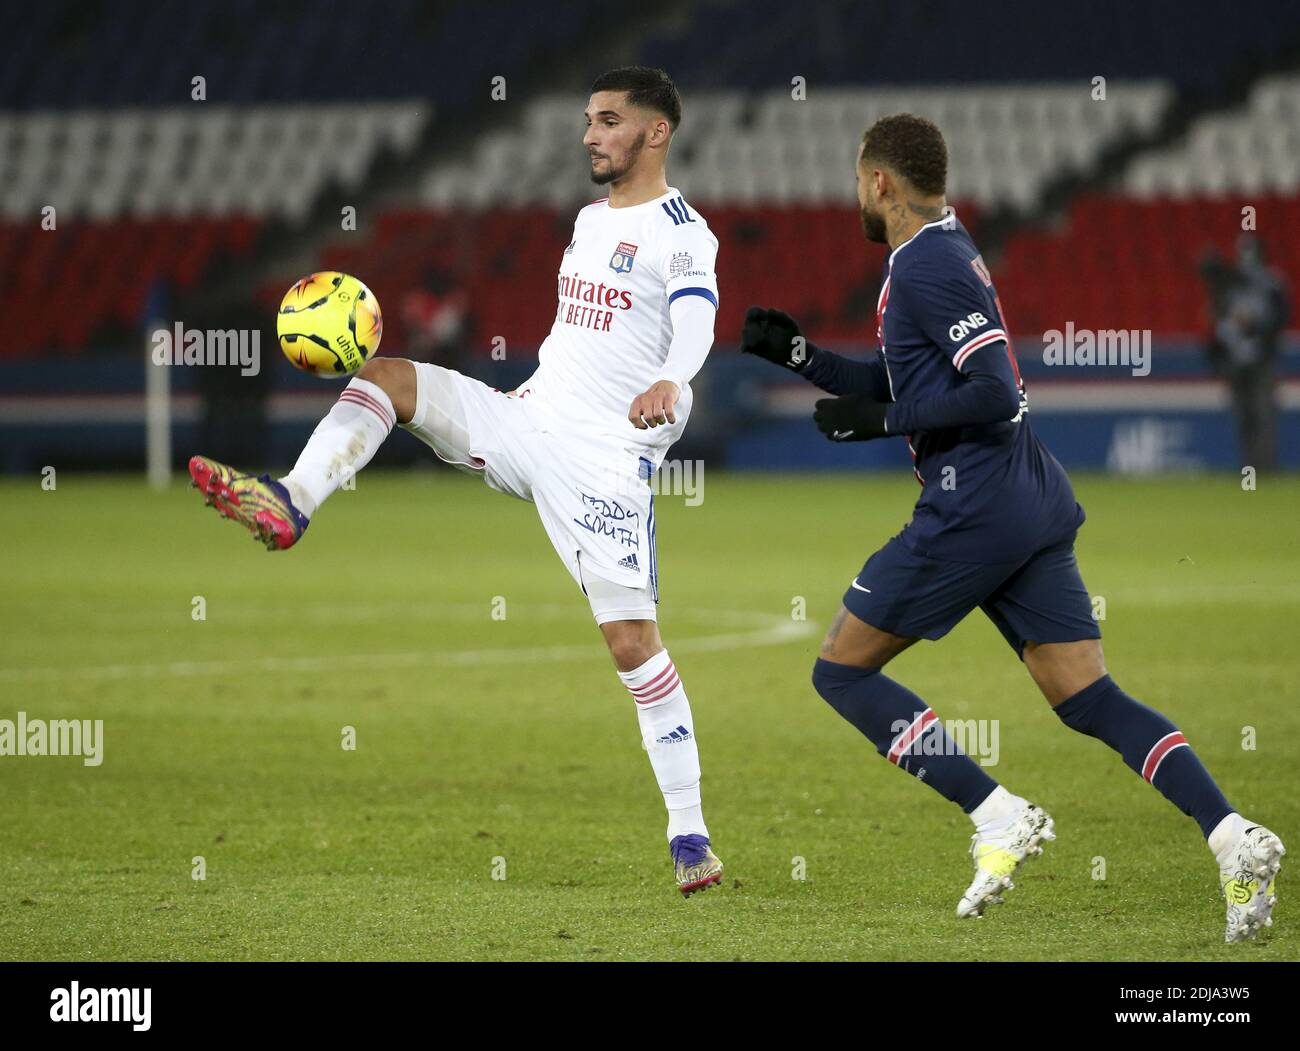 Houssem Aouar of Lyon during the French championship Ligue 1 football match between Paris Saint-Germain (PSG) and Olympique Lyon / LM Stock Photo